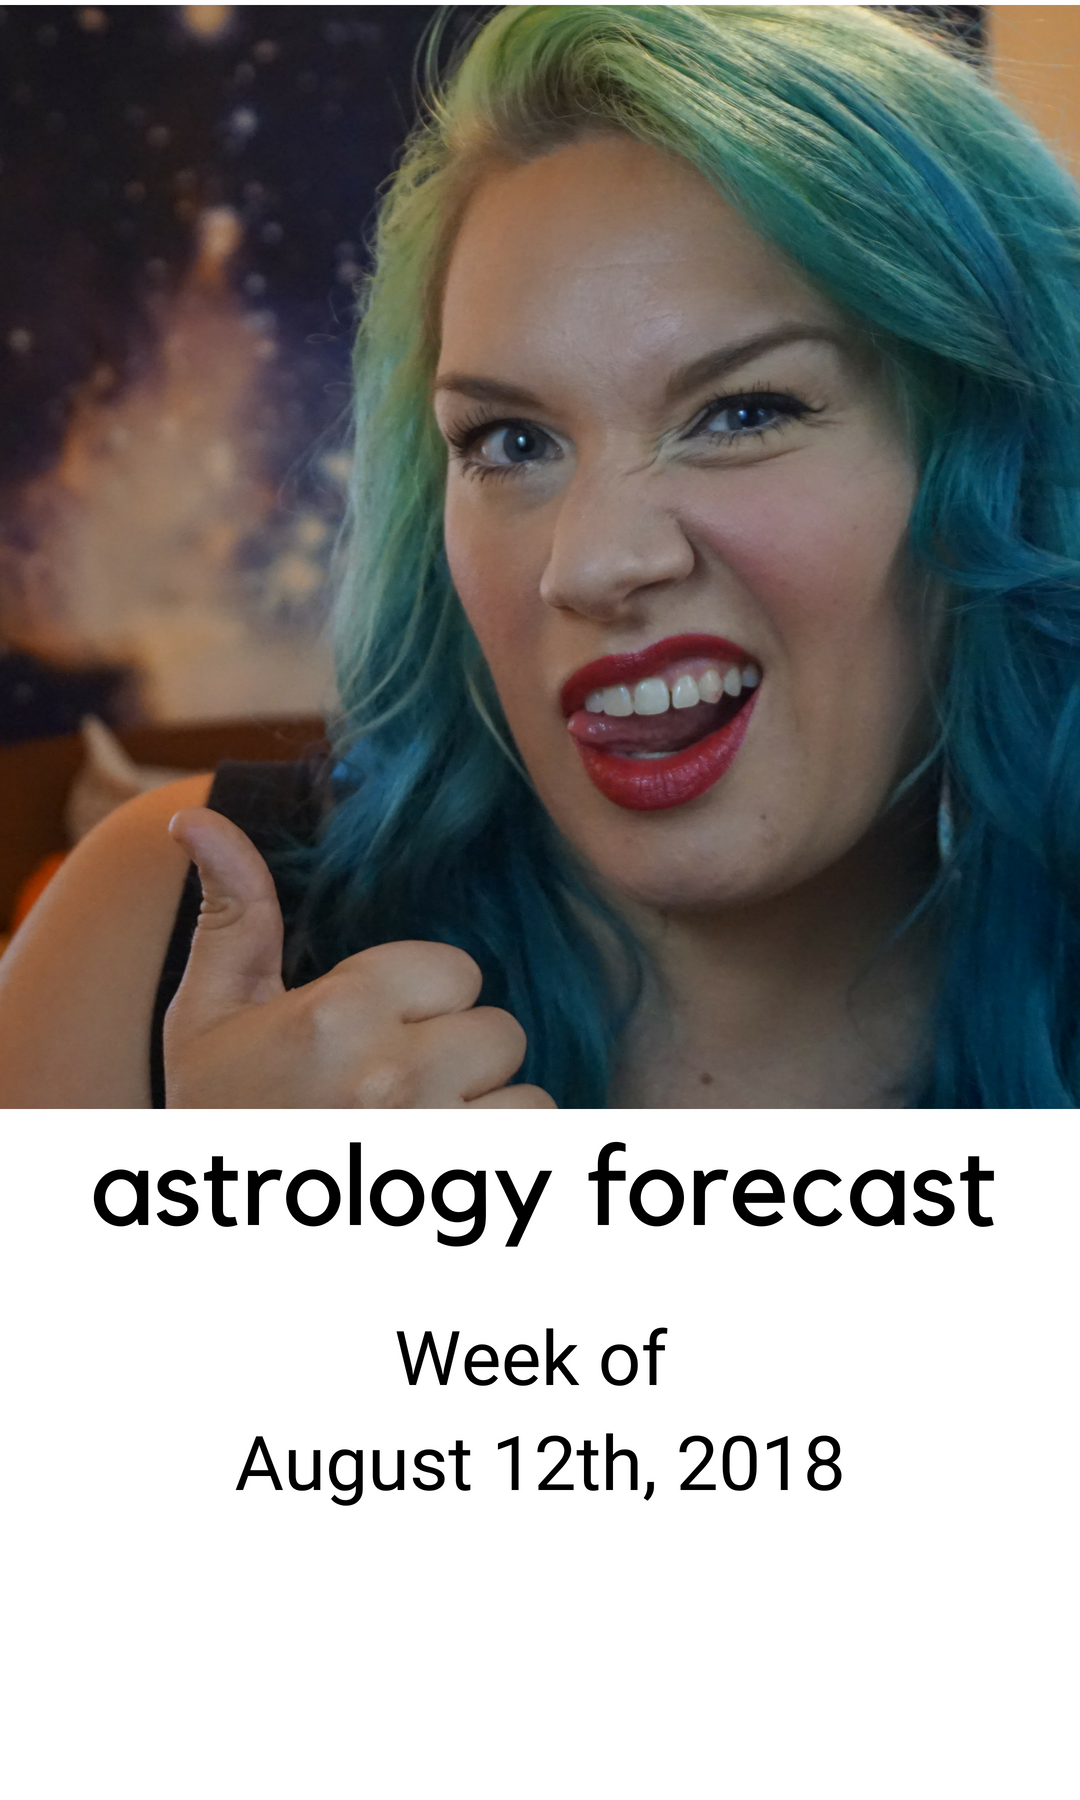 ASTROLOGY: Week of August 12th, 2018 — pinkiethebear Intuitive